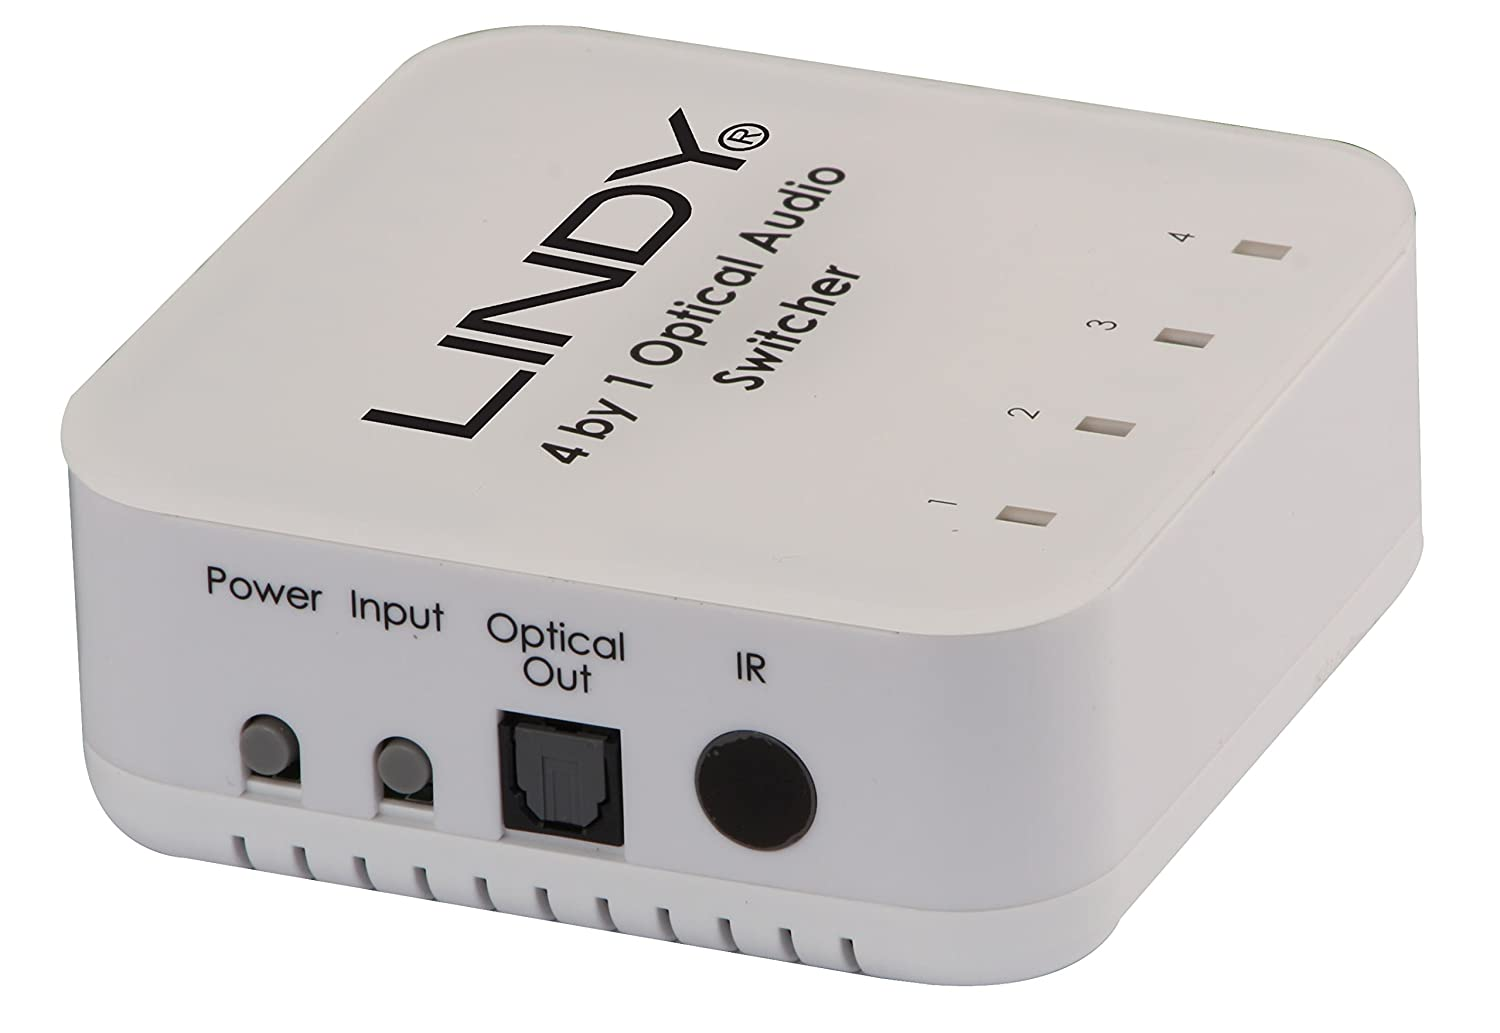 amazon com lindy 4 way toslink digital optical audio switch 70416 computers accessories